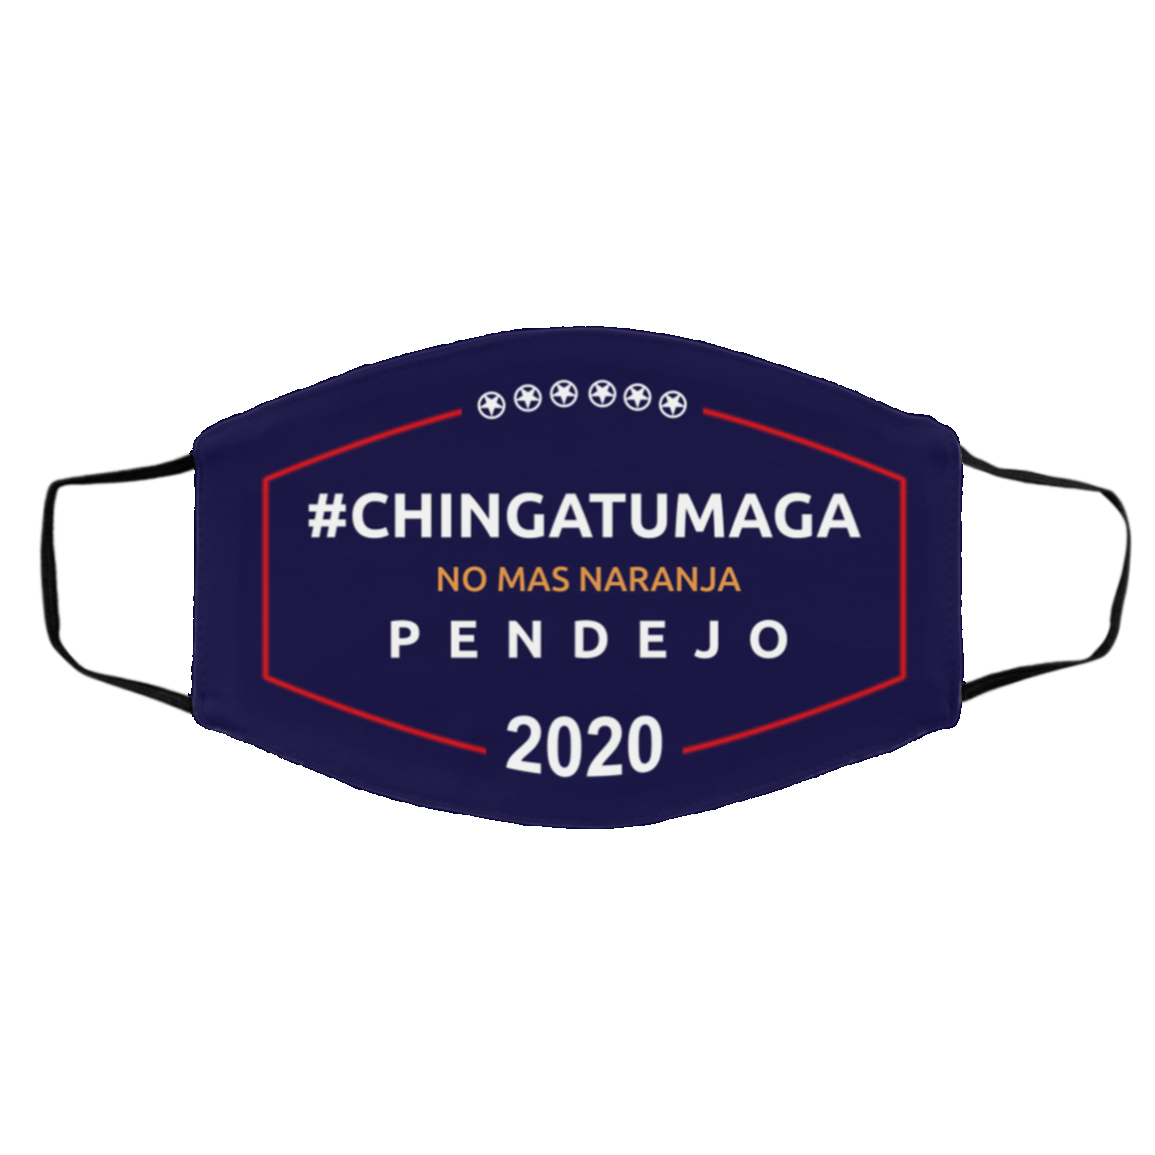 Chingatumaga Pendejo No Mas Naranja 2020 Cloth Face Mask Chingatumaga Mask Joe Biden Campaign Fly